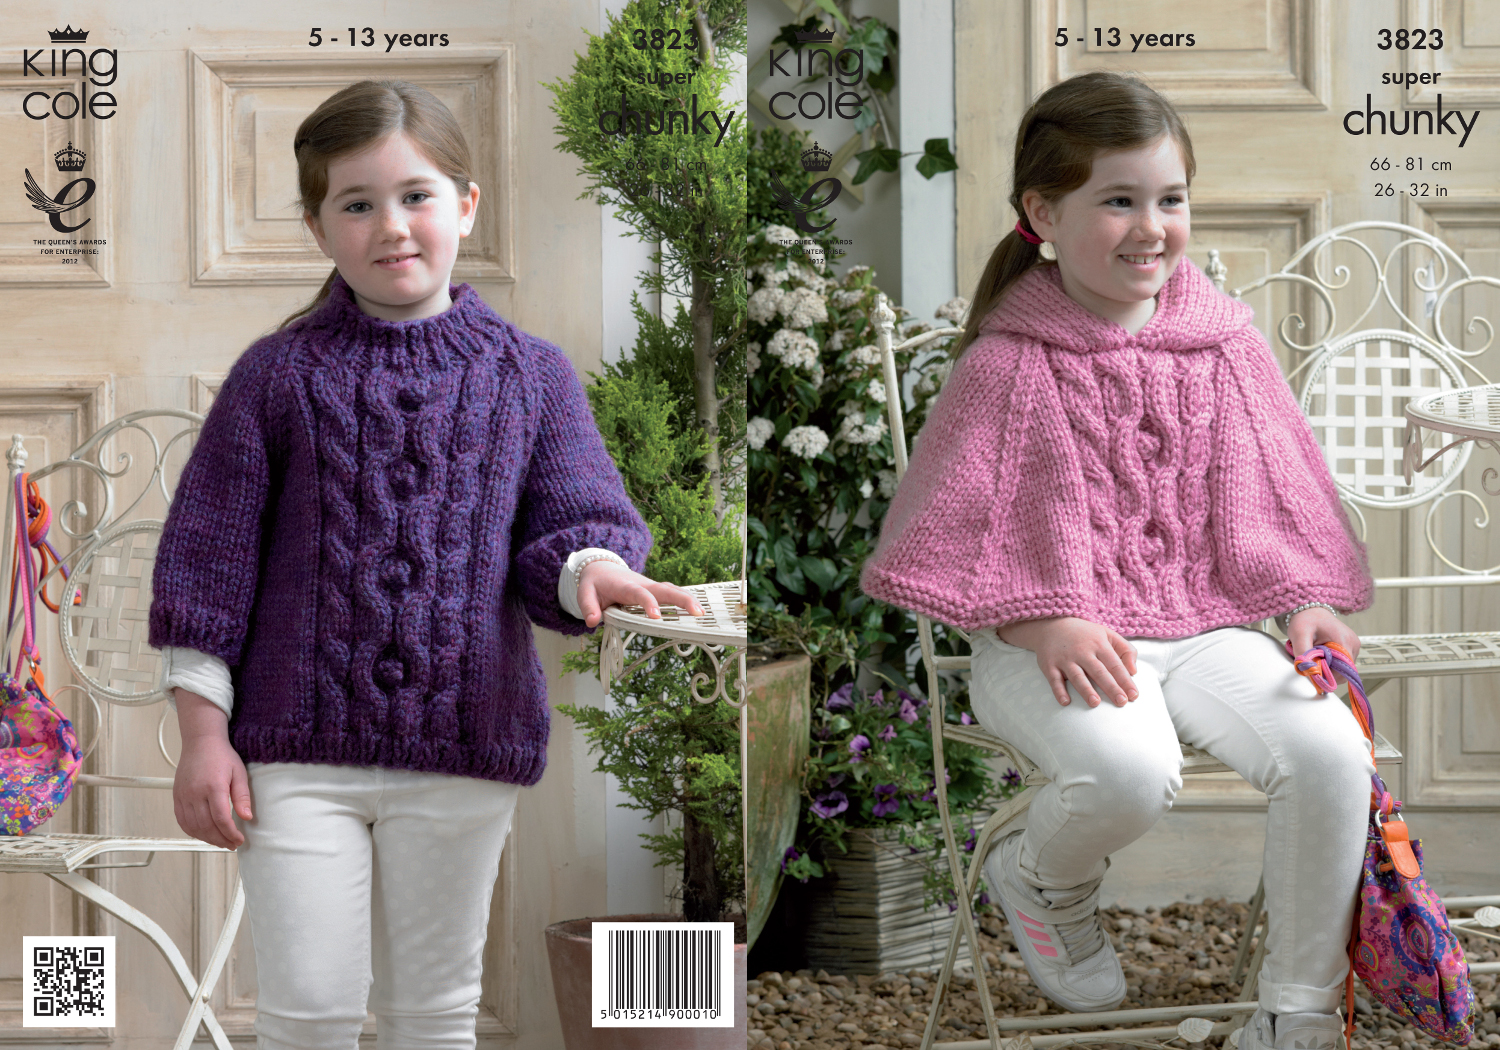 King Cole Girls Super Chunky Knitting Pattern Cable Knit Hooded Cape ...